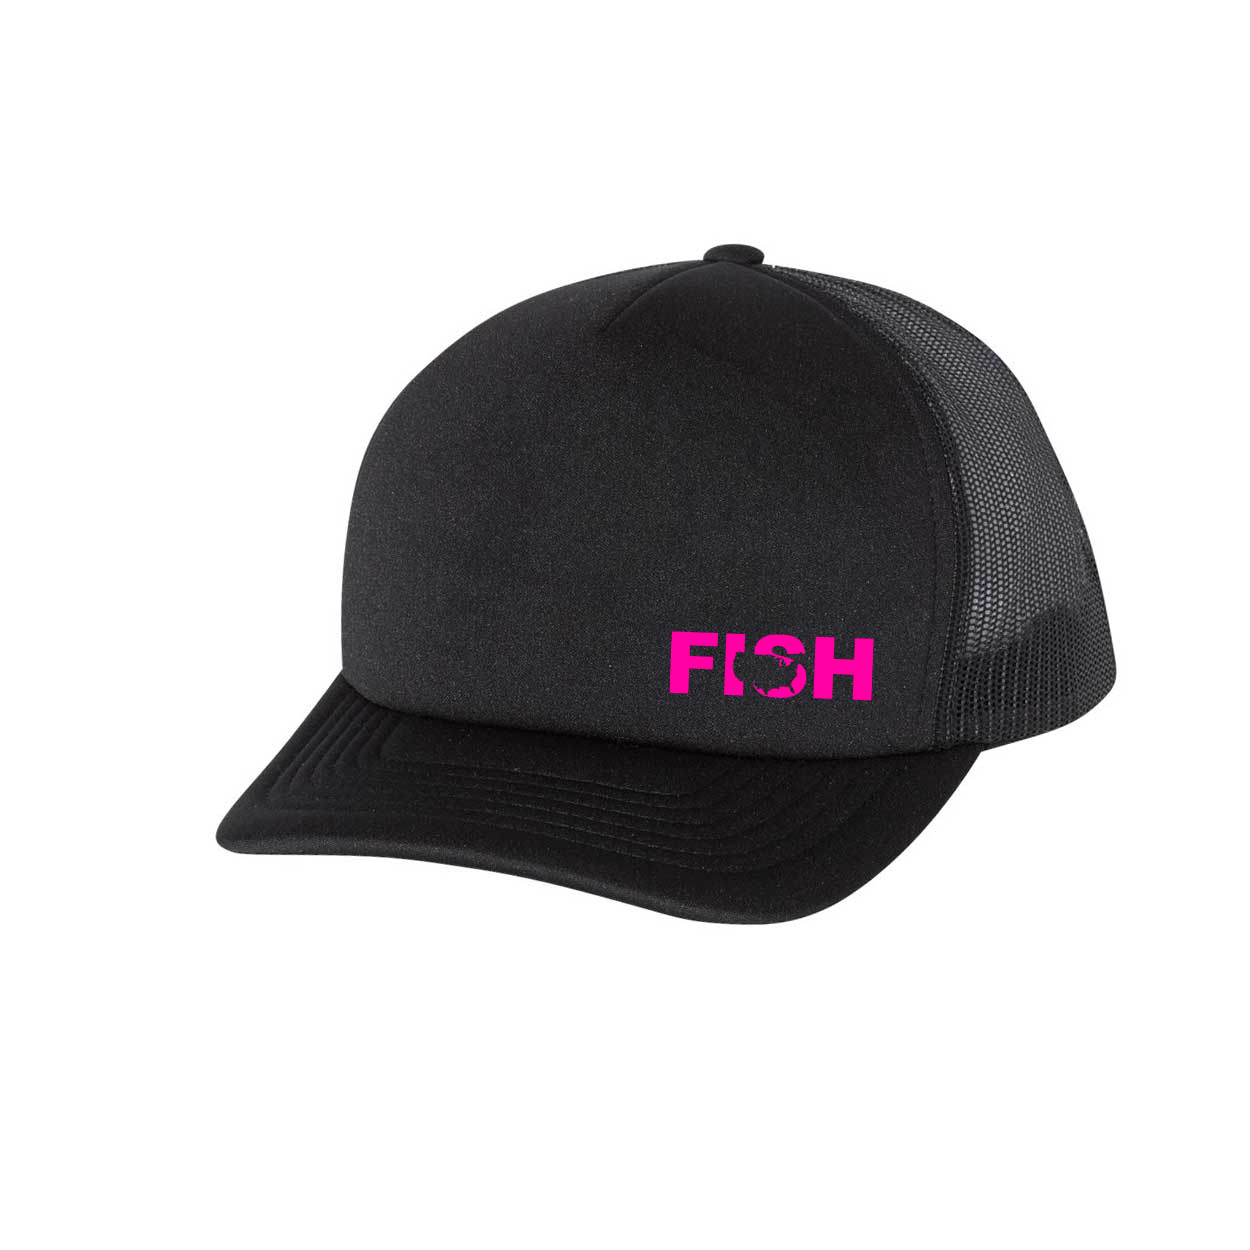 Fish United States Night Out Premium Foam Trucker Snapback Hat Black (Pink Logo)